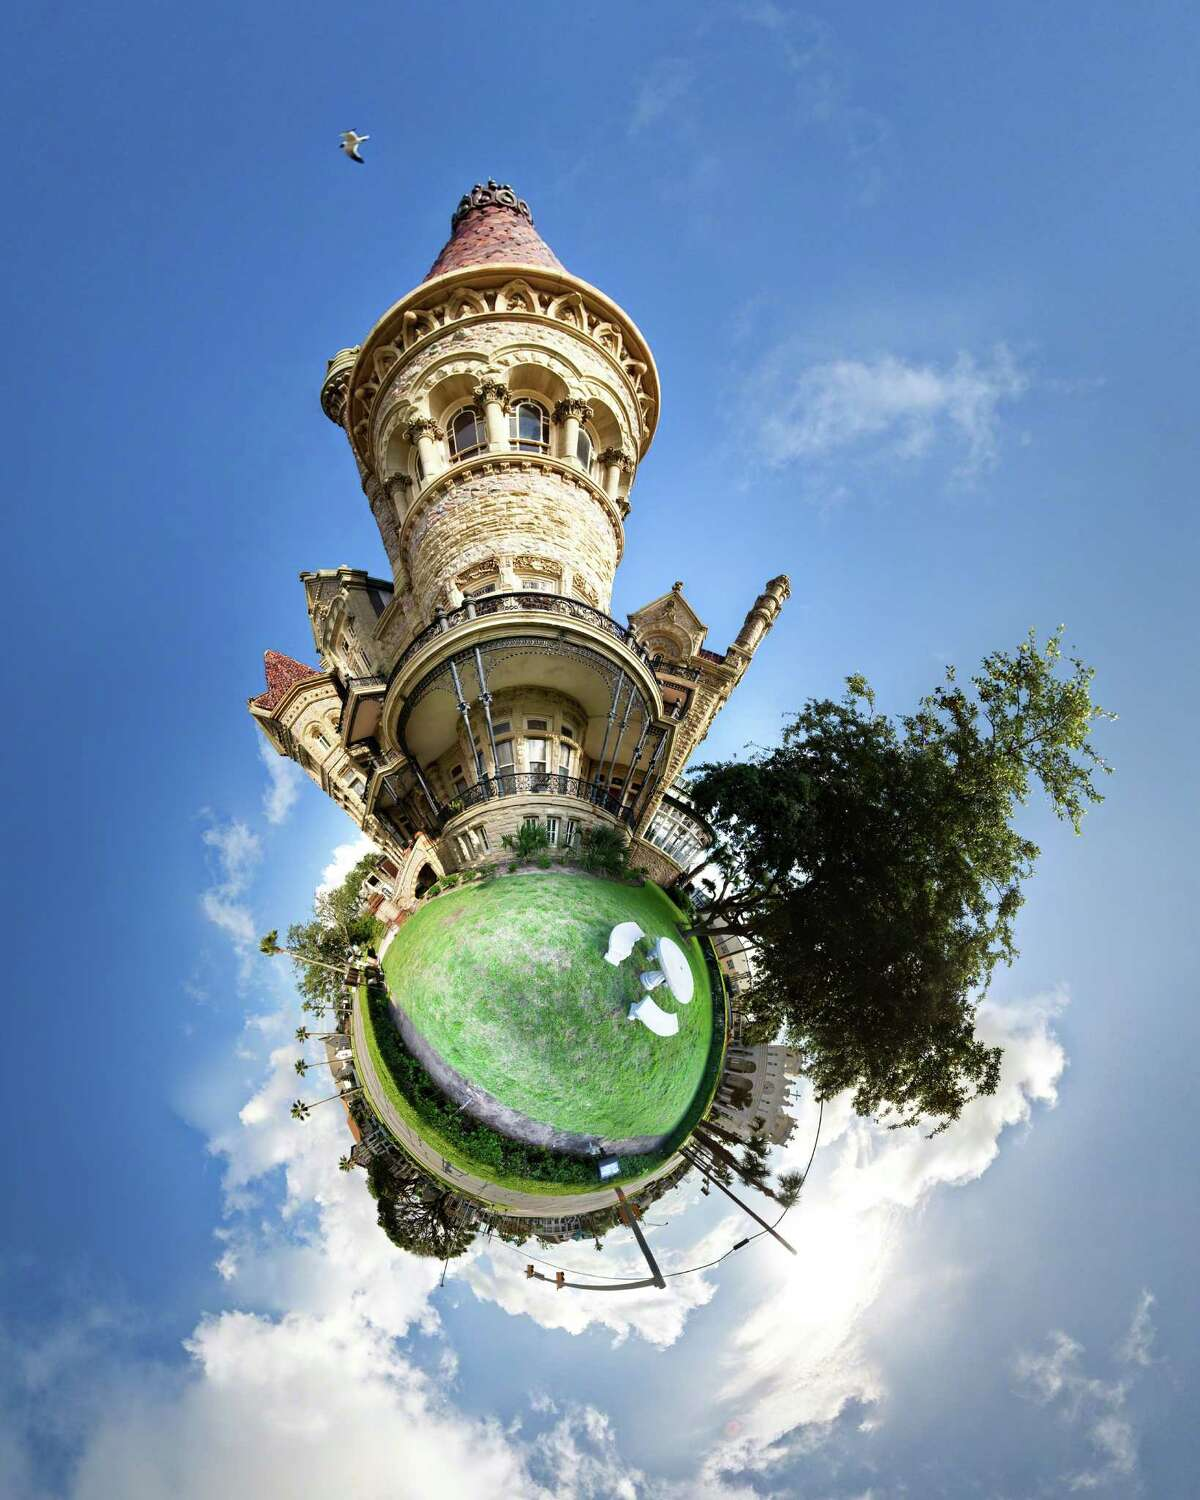 Syd Moen's spherical panorama puts the Bishop's Palace, a grand 19th-century home in Galveston, on its own tiny planet. Her creations, 360-degree sets of photos melded together, will join the work of 300 other artists at Bayou City Art Festival.